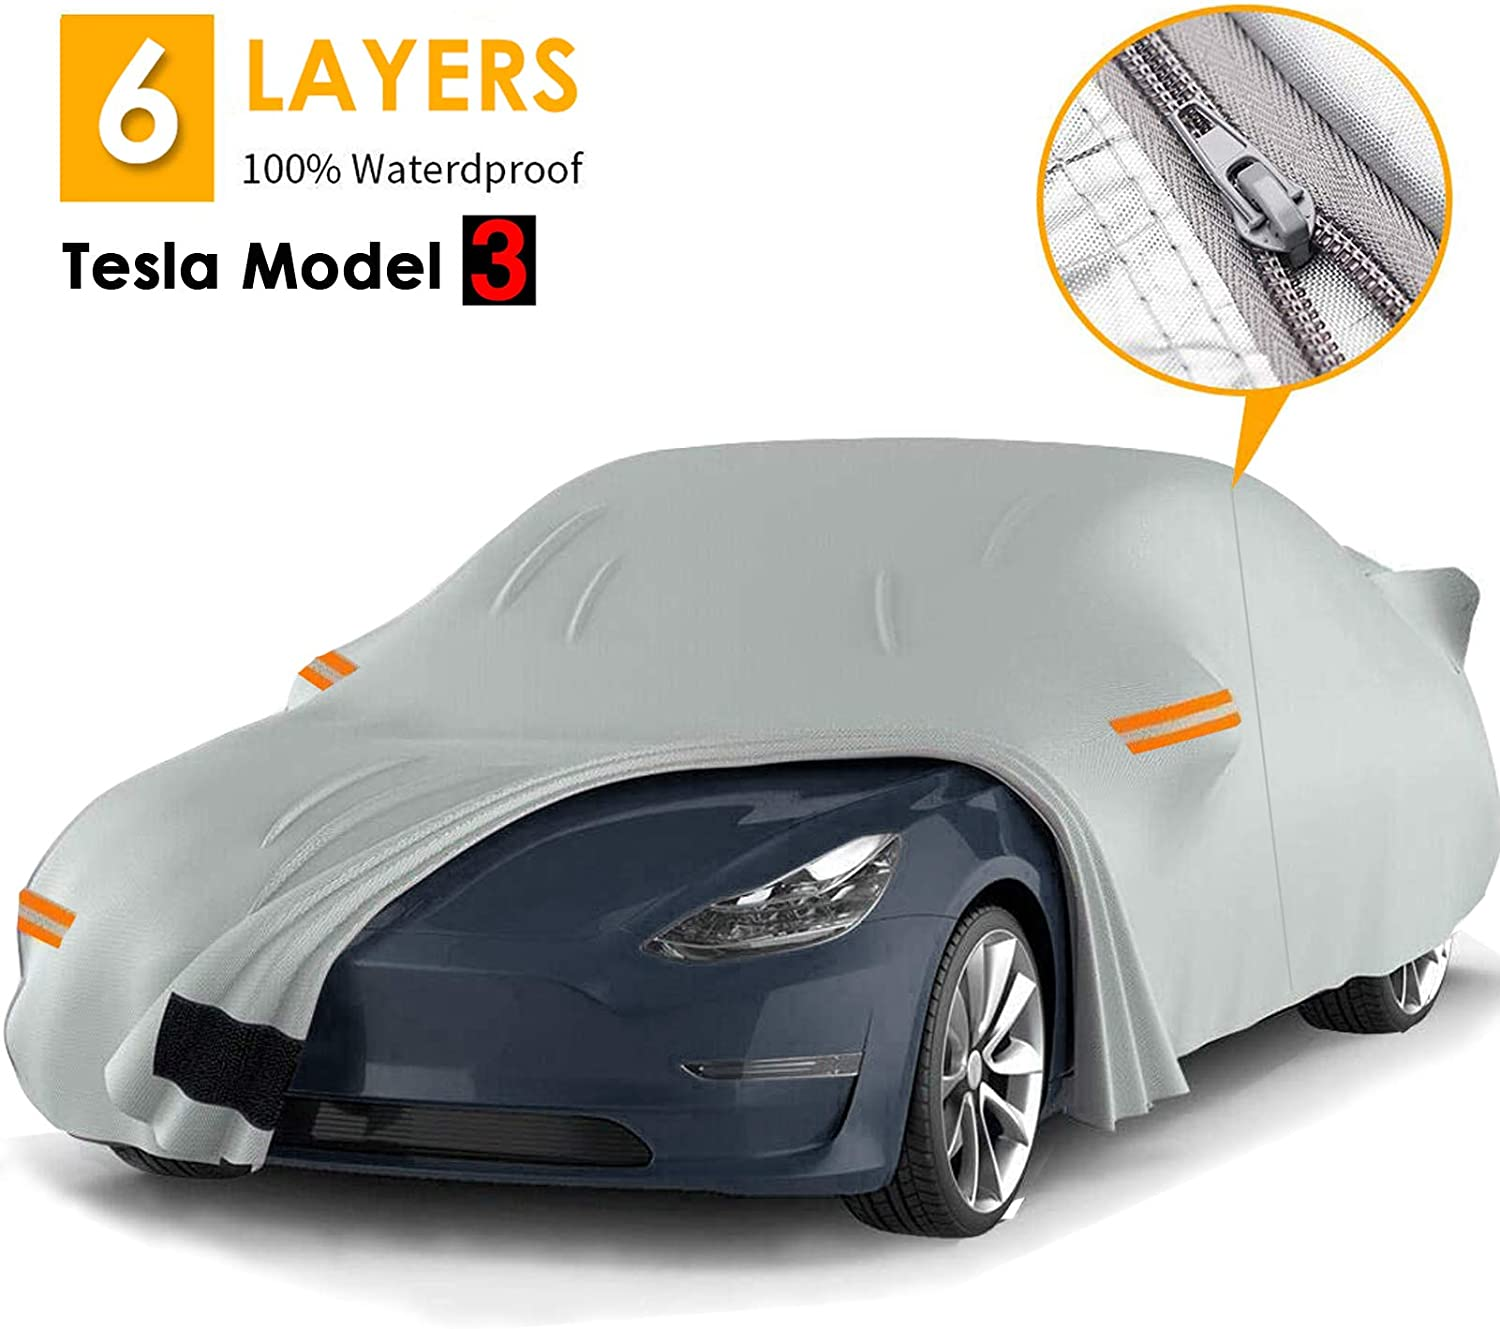 6 Layers Durable Tesla Outdoor Cover All Weather Protection Car Covers with Ventilated Mesh /& Door Zipper Fit for Tesla Model 3 100/% Waterproof Sedan Cover for Tesla Model 3 Big Ant Car Cover